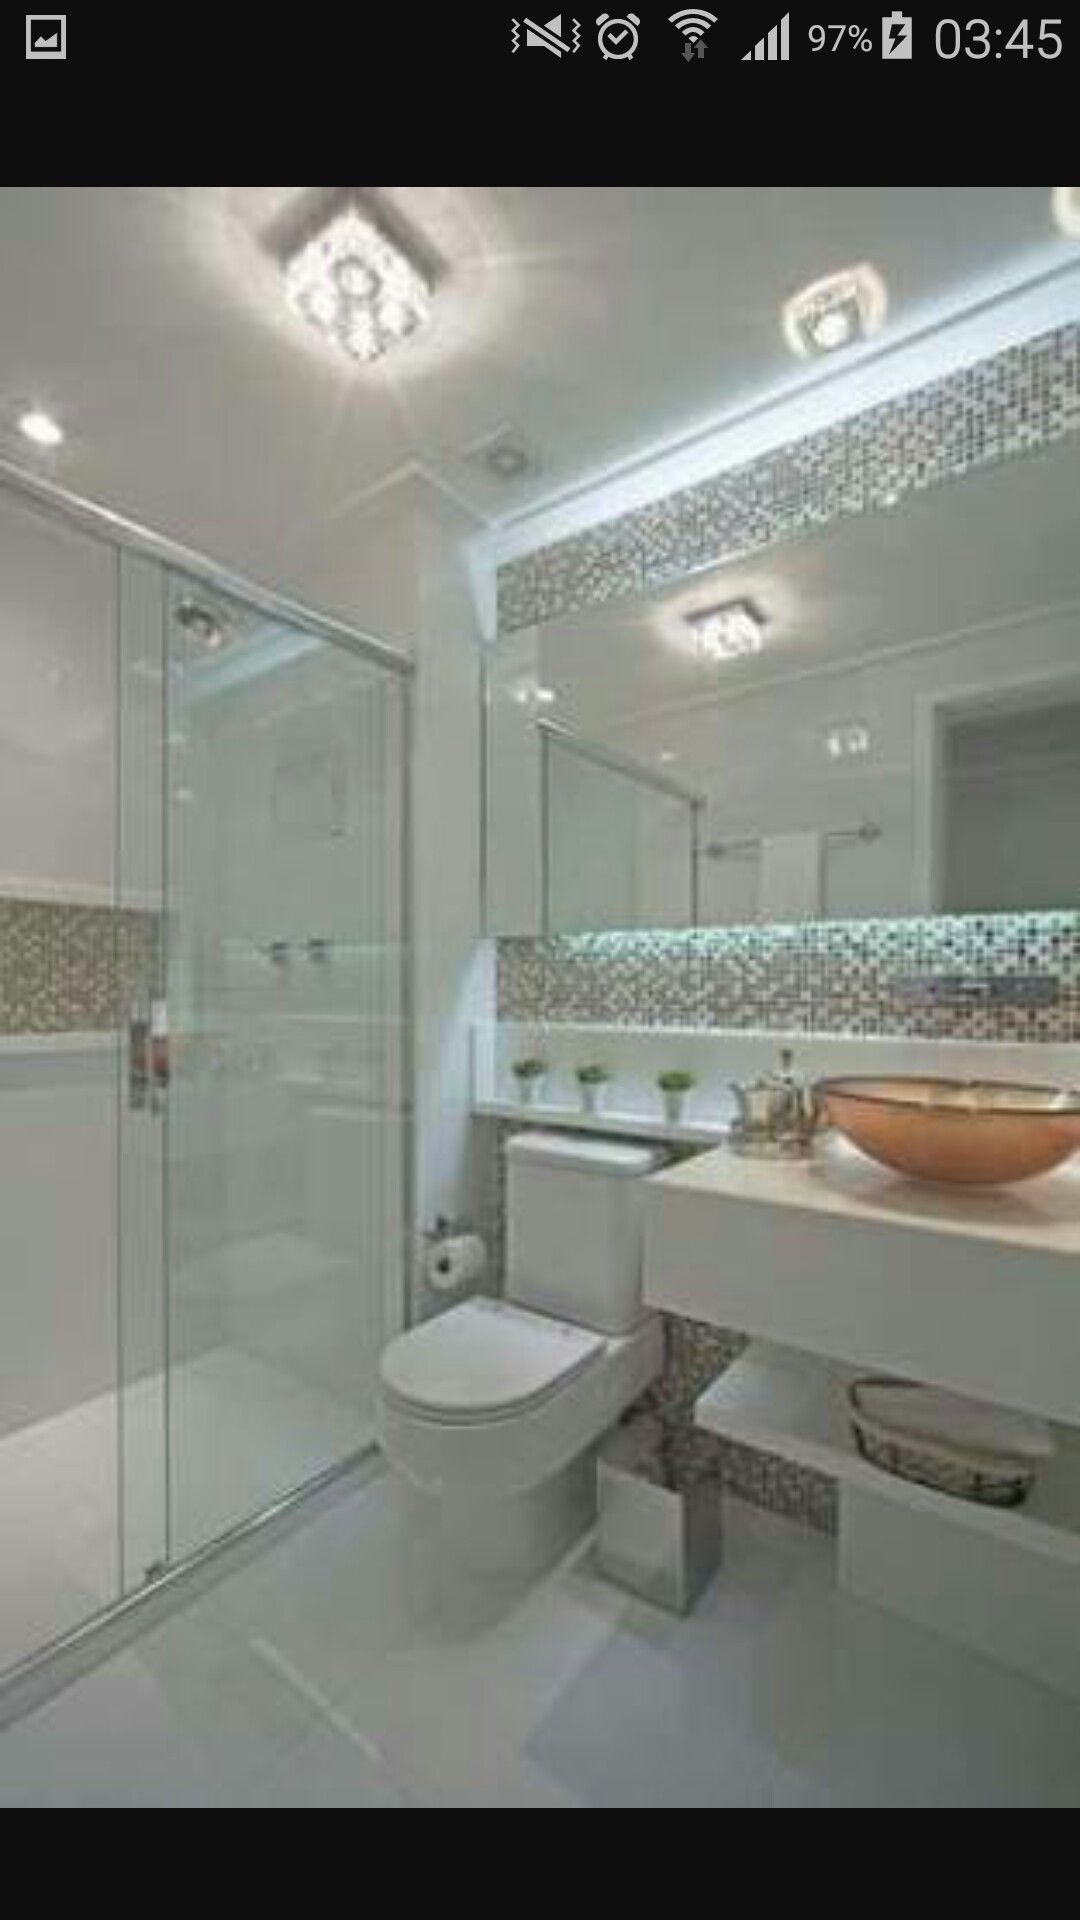 Bathroom Designs, Bathroom Ideas, Bathroom Tiling, Ems, Bathroom Showers, Space,